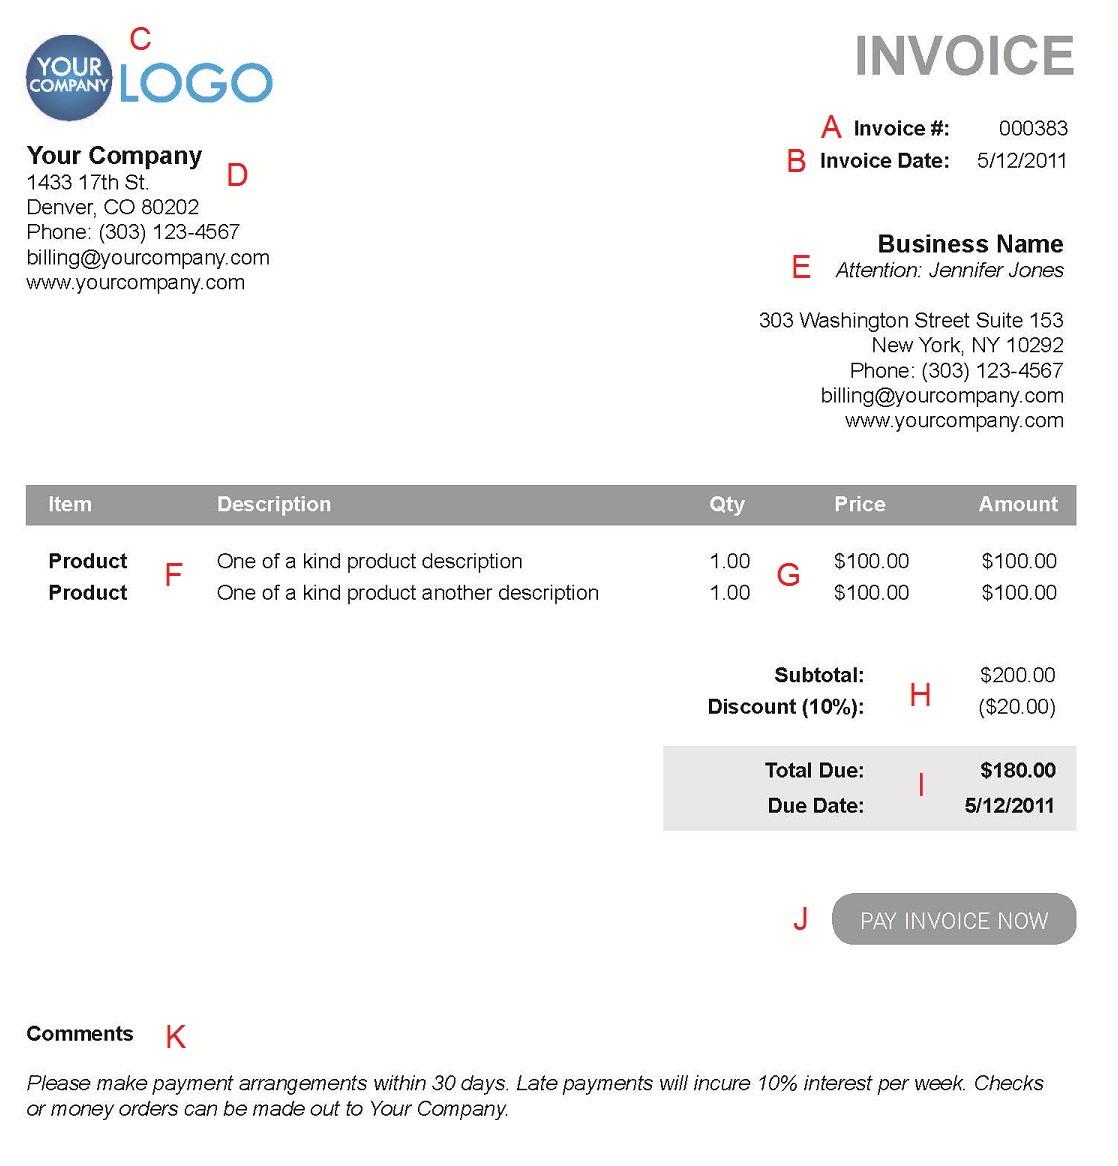 Reliefworkersus  Prepossessing The  Different Sections Of An Electronic Payment Invoice With Lovely A  With Comely Bmw Invoice Price Also Electronic Invoices In Addition Factory Invoice Vs Msrp And Zipcash Invoice As Well As Fedex Invoice Payment Additionally Invoice Free Template From Paysimplecom With Reliefworkersus  Lovely The  Different Sections Of An Electronic Payment Invoice With Comely A  And Prepossessing Bmw Invoice Price Also Electronic Invoices In Addition Factory Invoice Vs Msrp From Paysimplecom